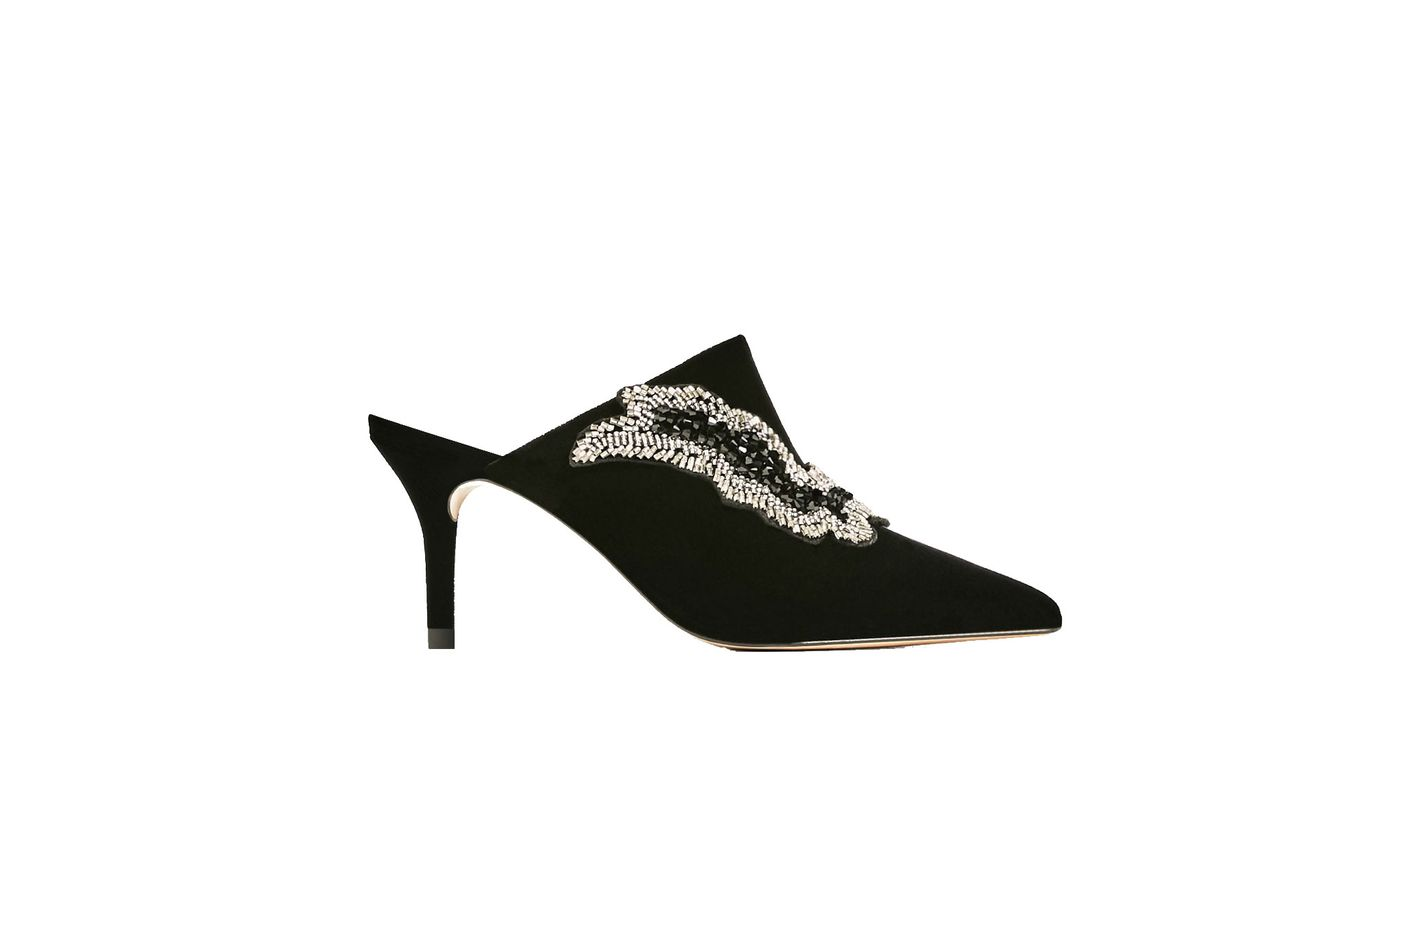 81b447ba04 The Best Heels for New Year's Eve Parties